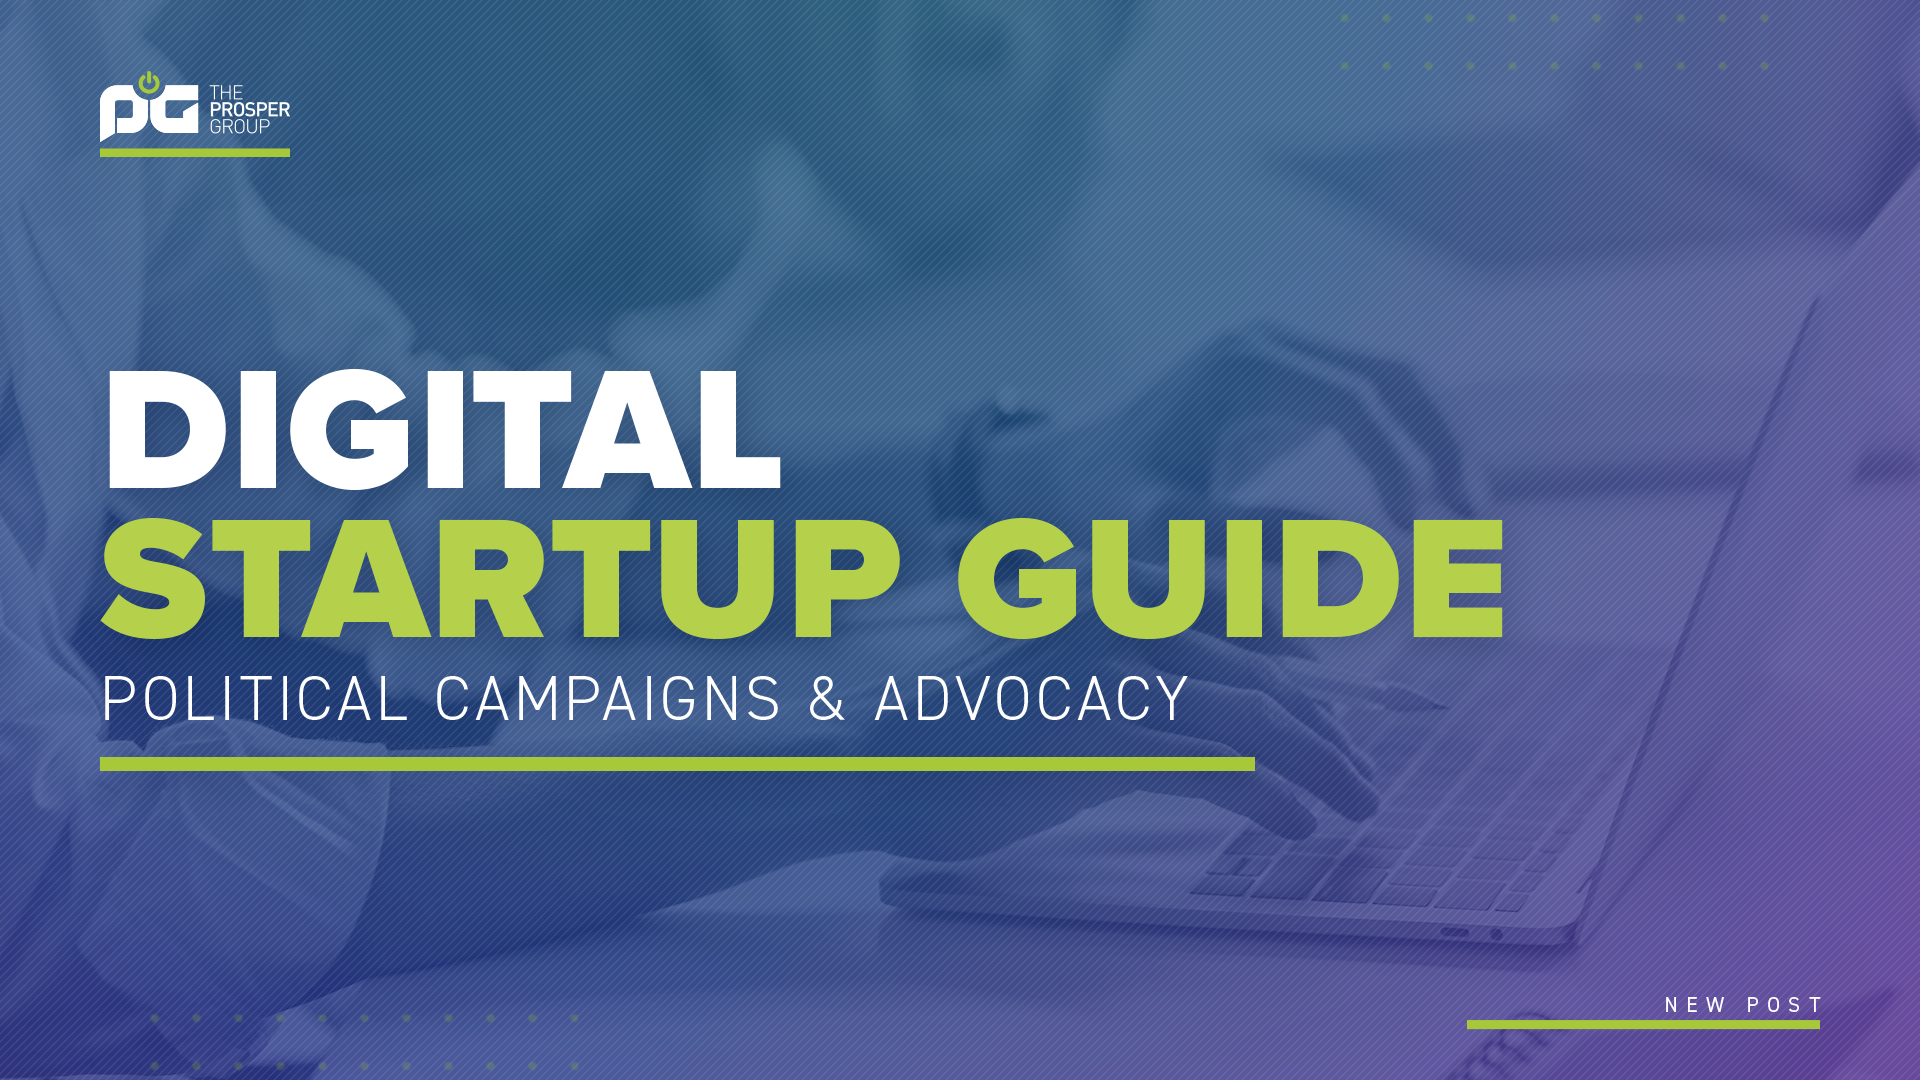 Digital Startup Guide for Political Campaigns and Advocacy